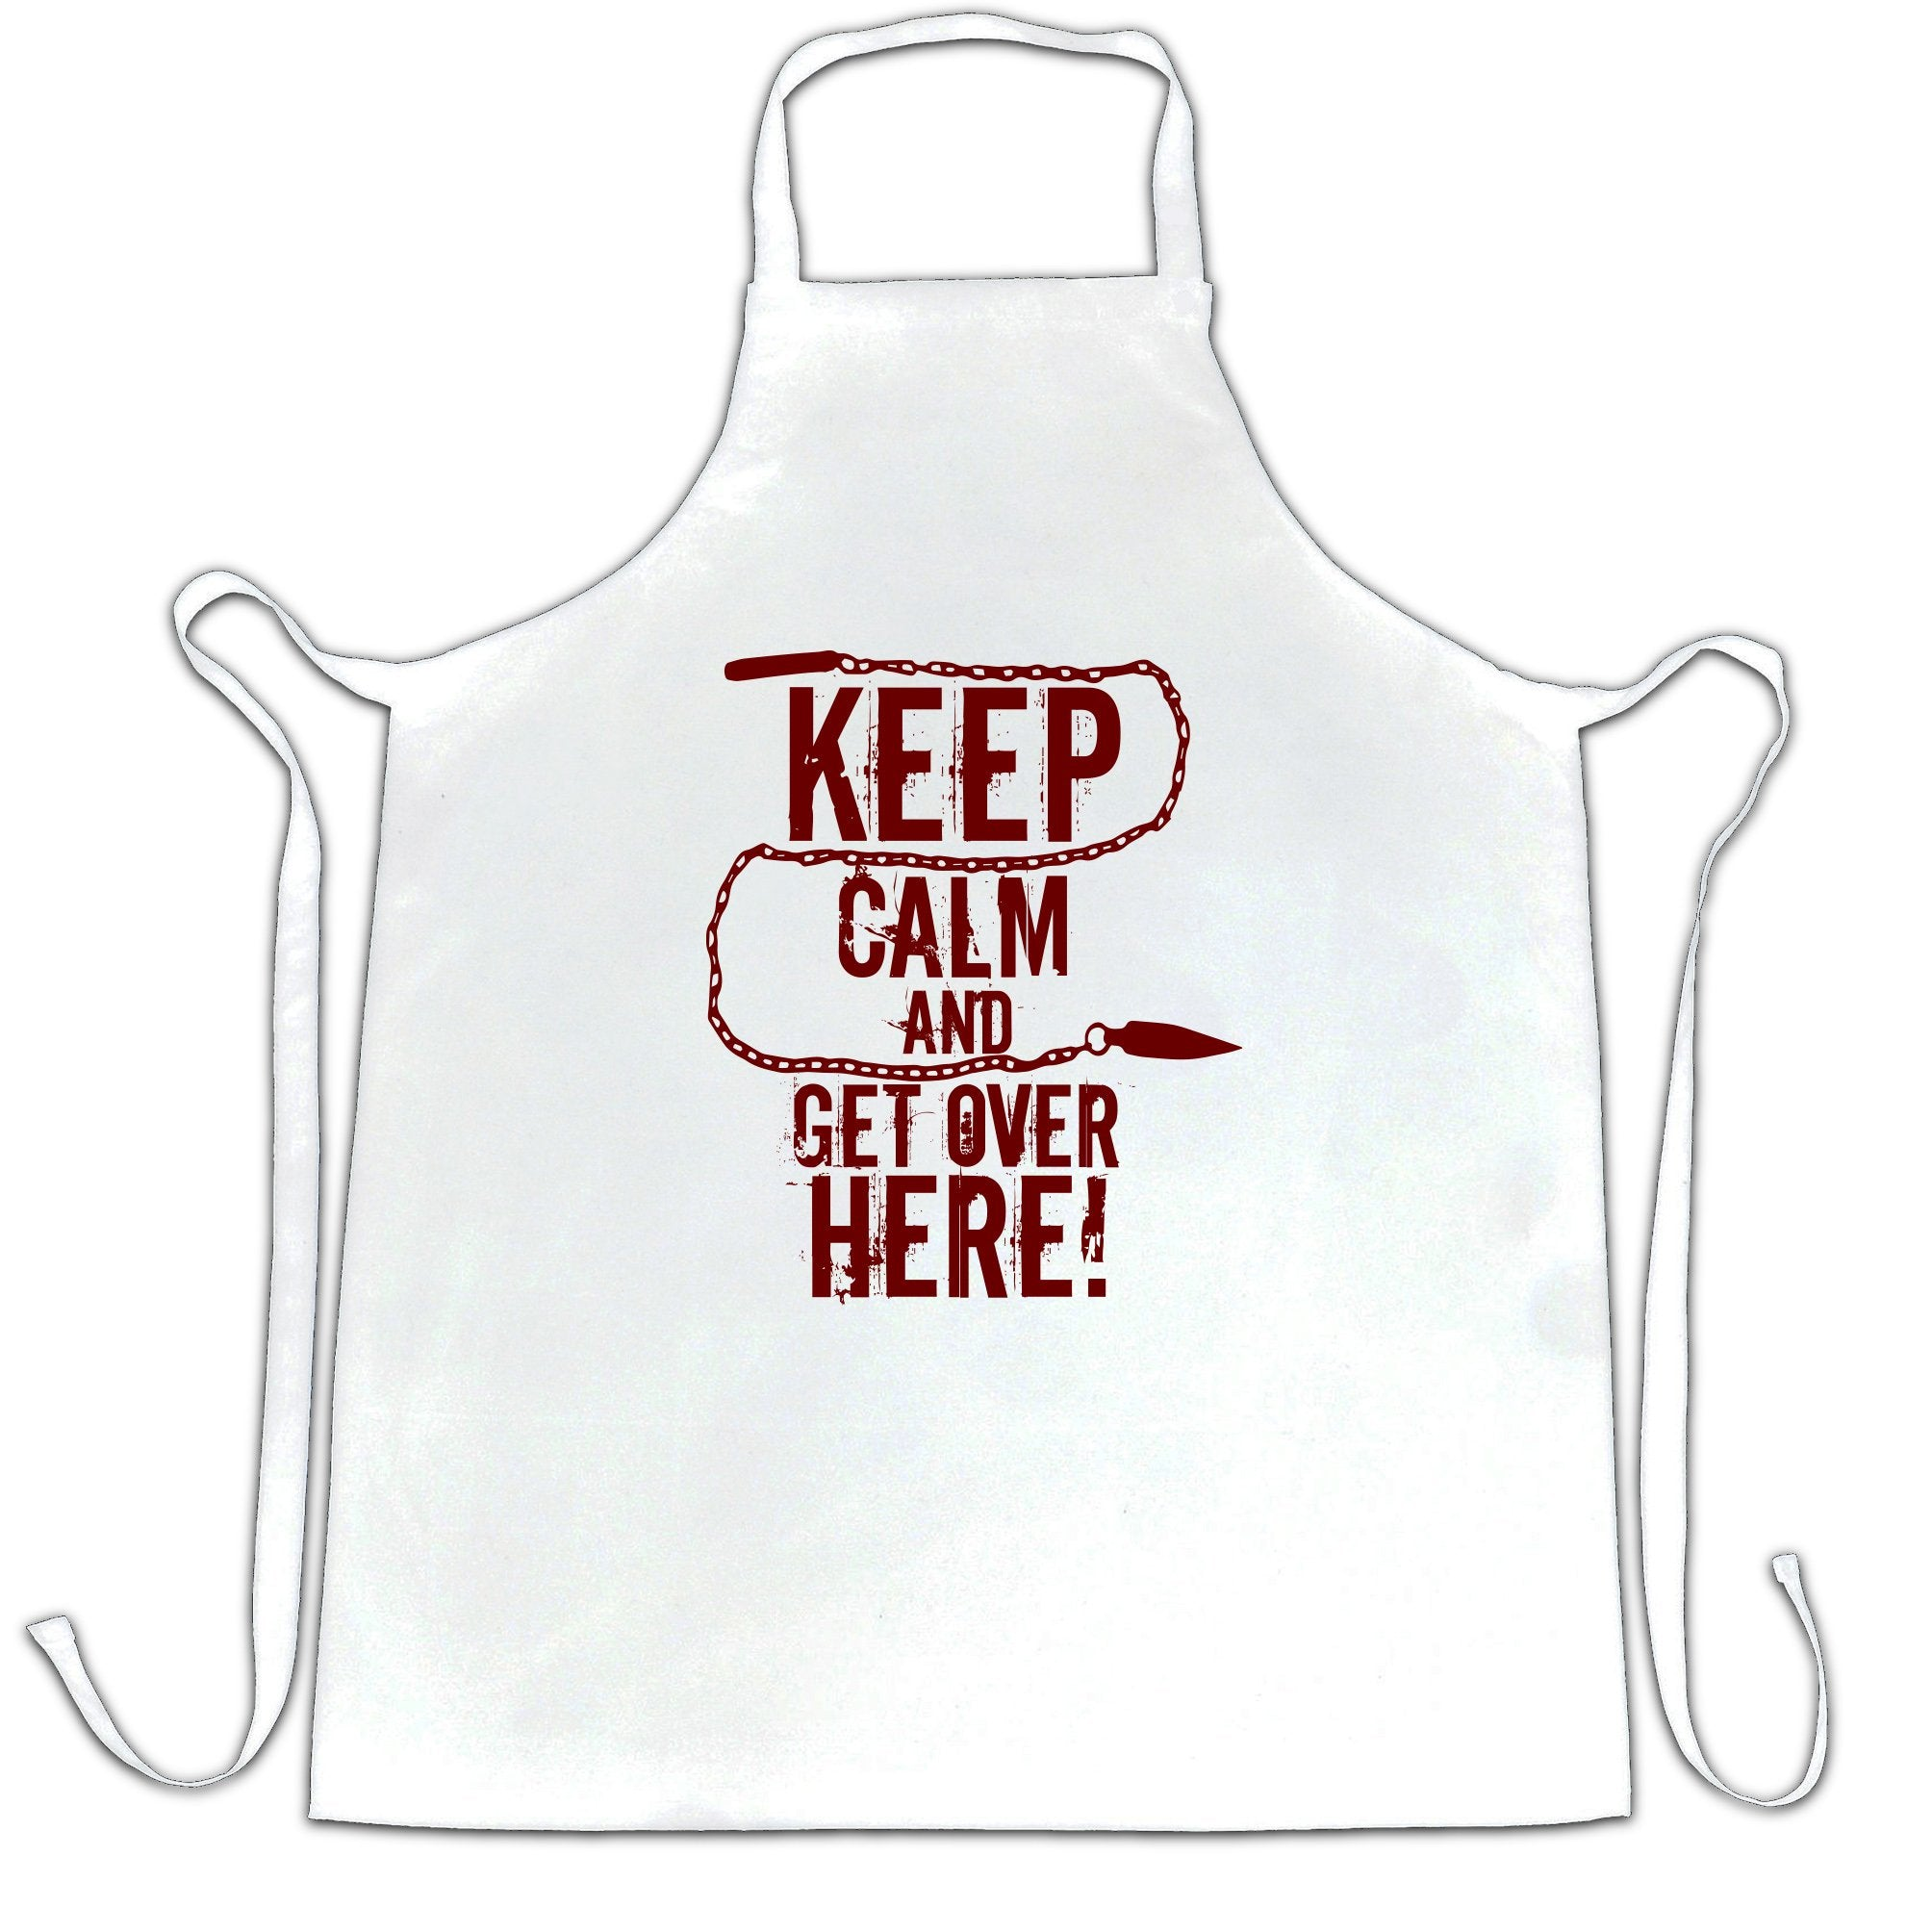 Keep Calm And Get Over Here Printed Slogan Quote Design Premium Apron